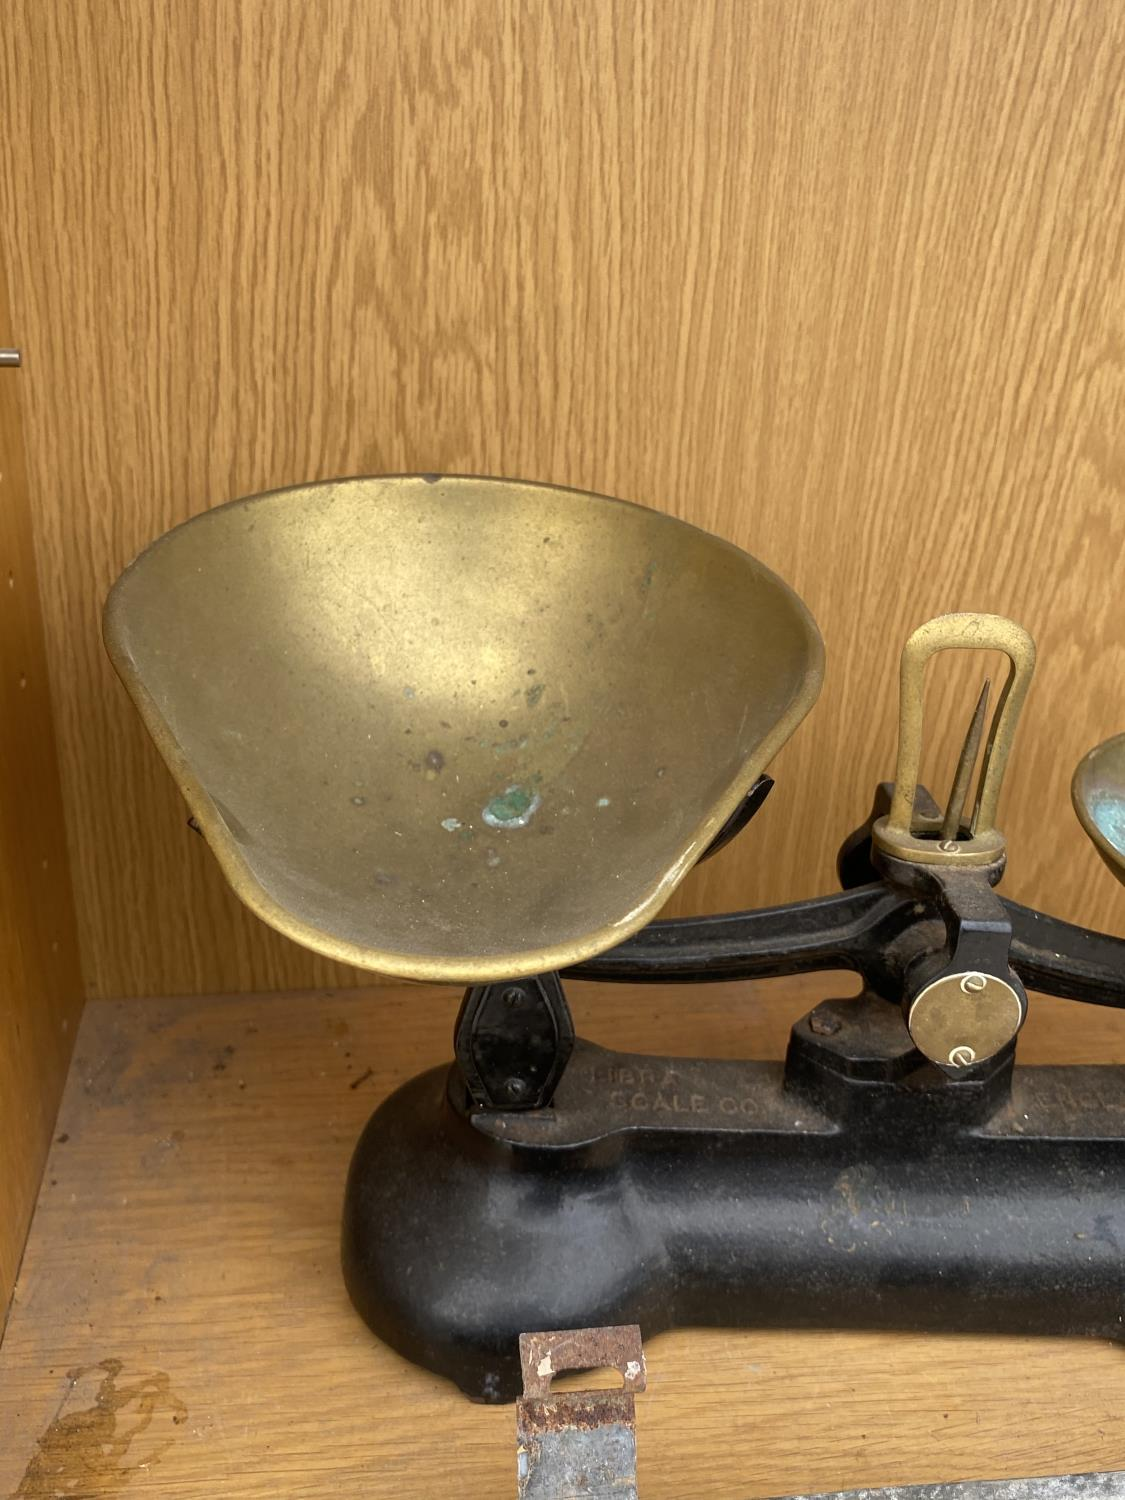 A PAIR OF BRASS KITCHEN SCALES - Image 3 of 4